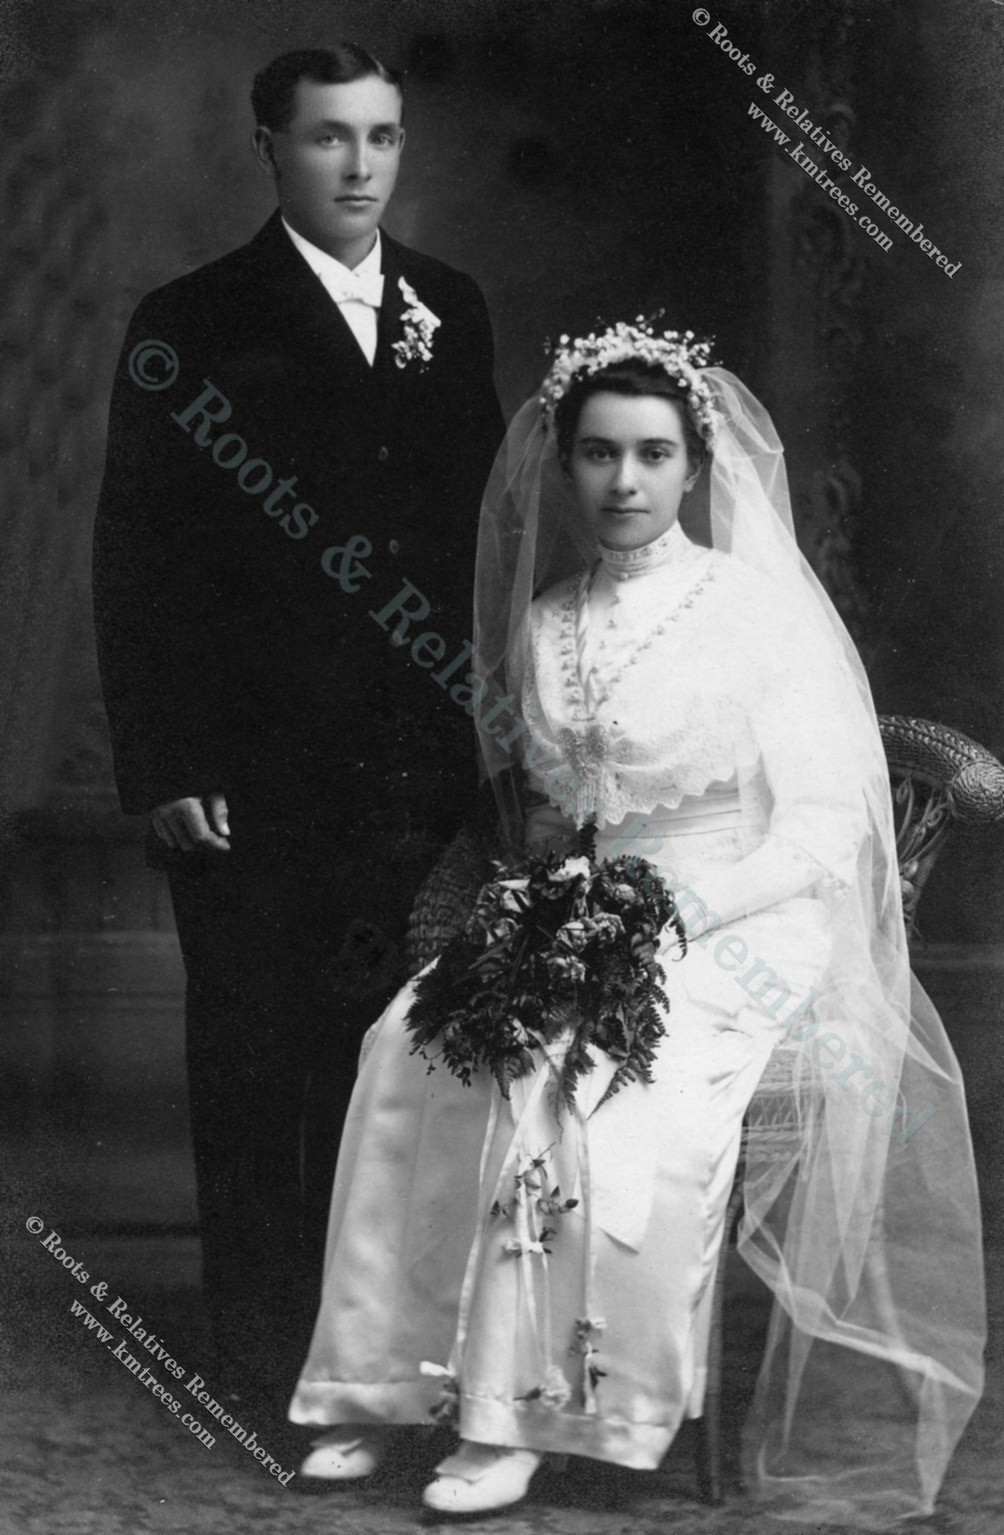 1913 Wedding--Charles Wiltscheck & Rose Hillesheim